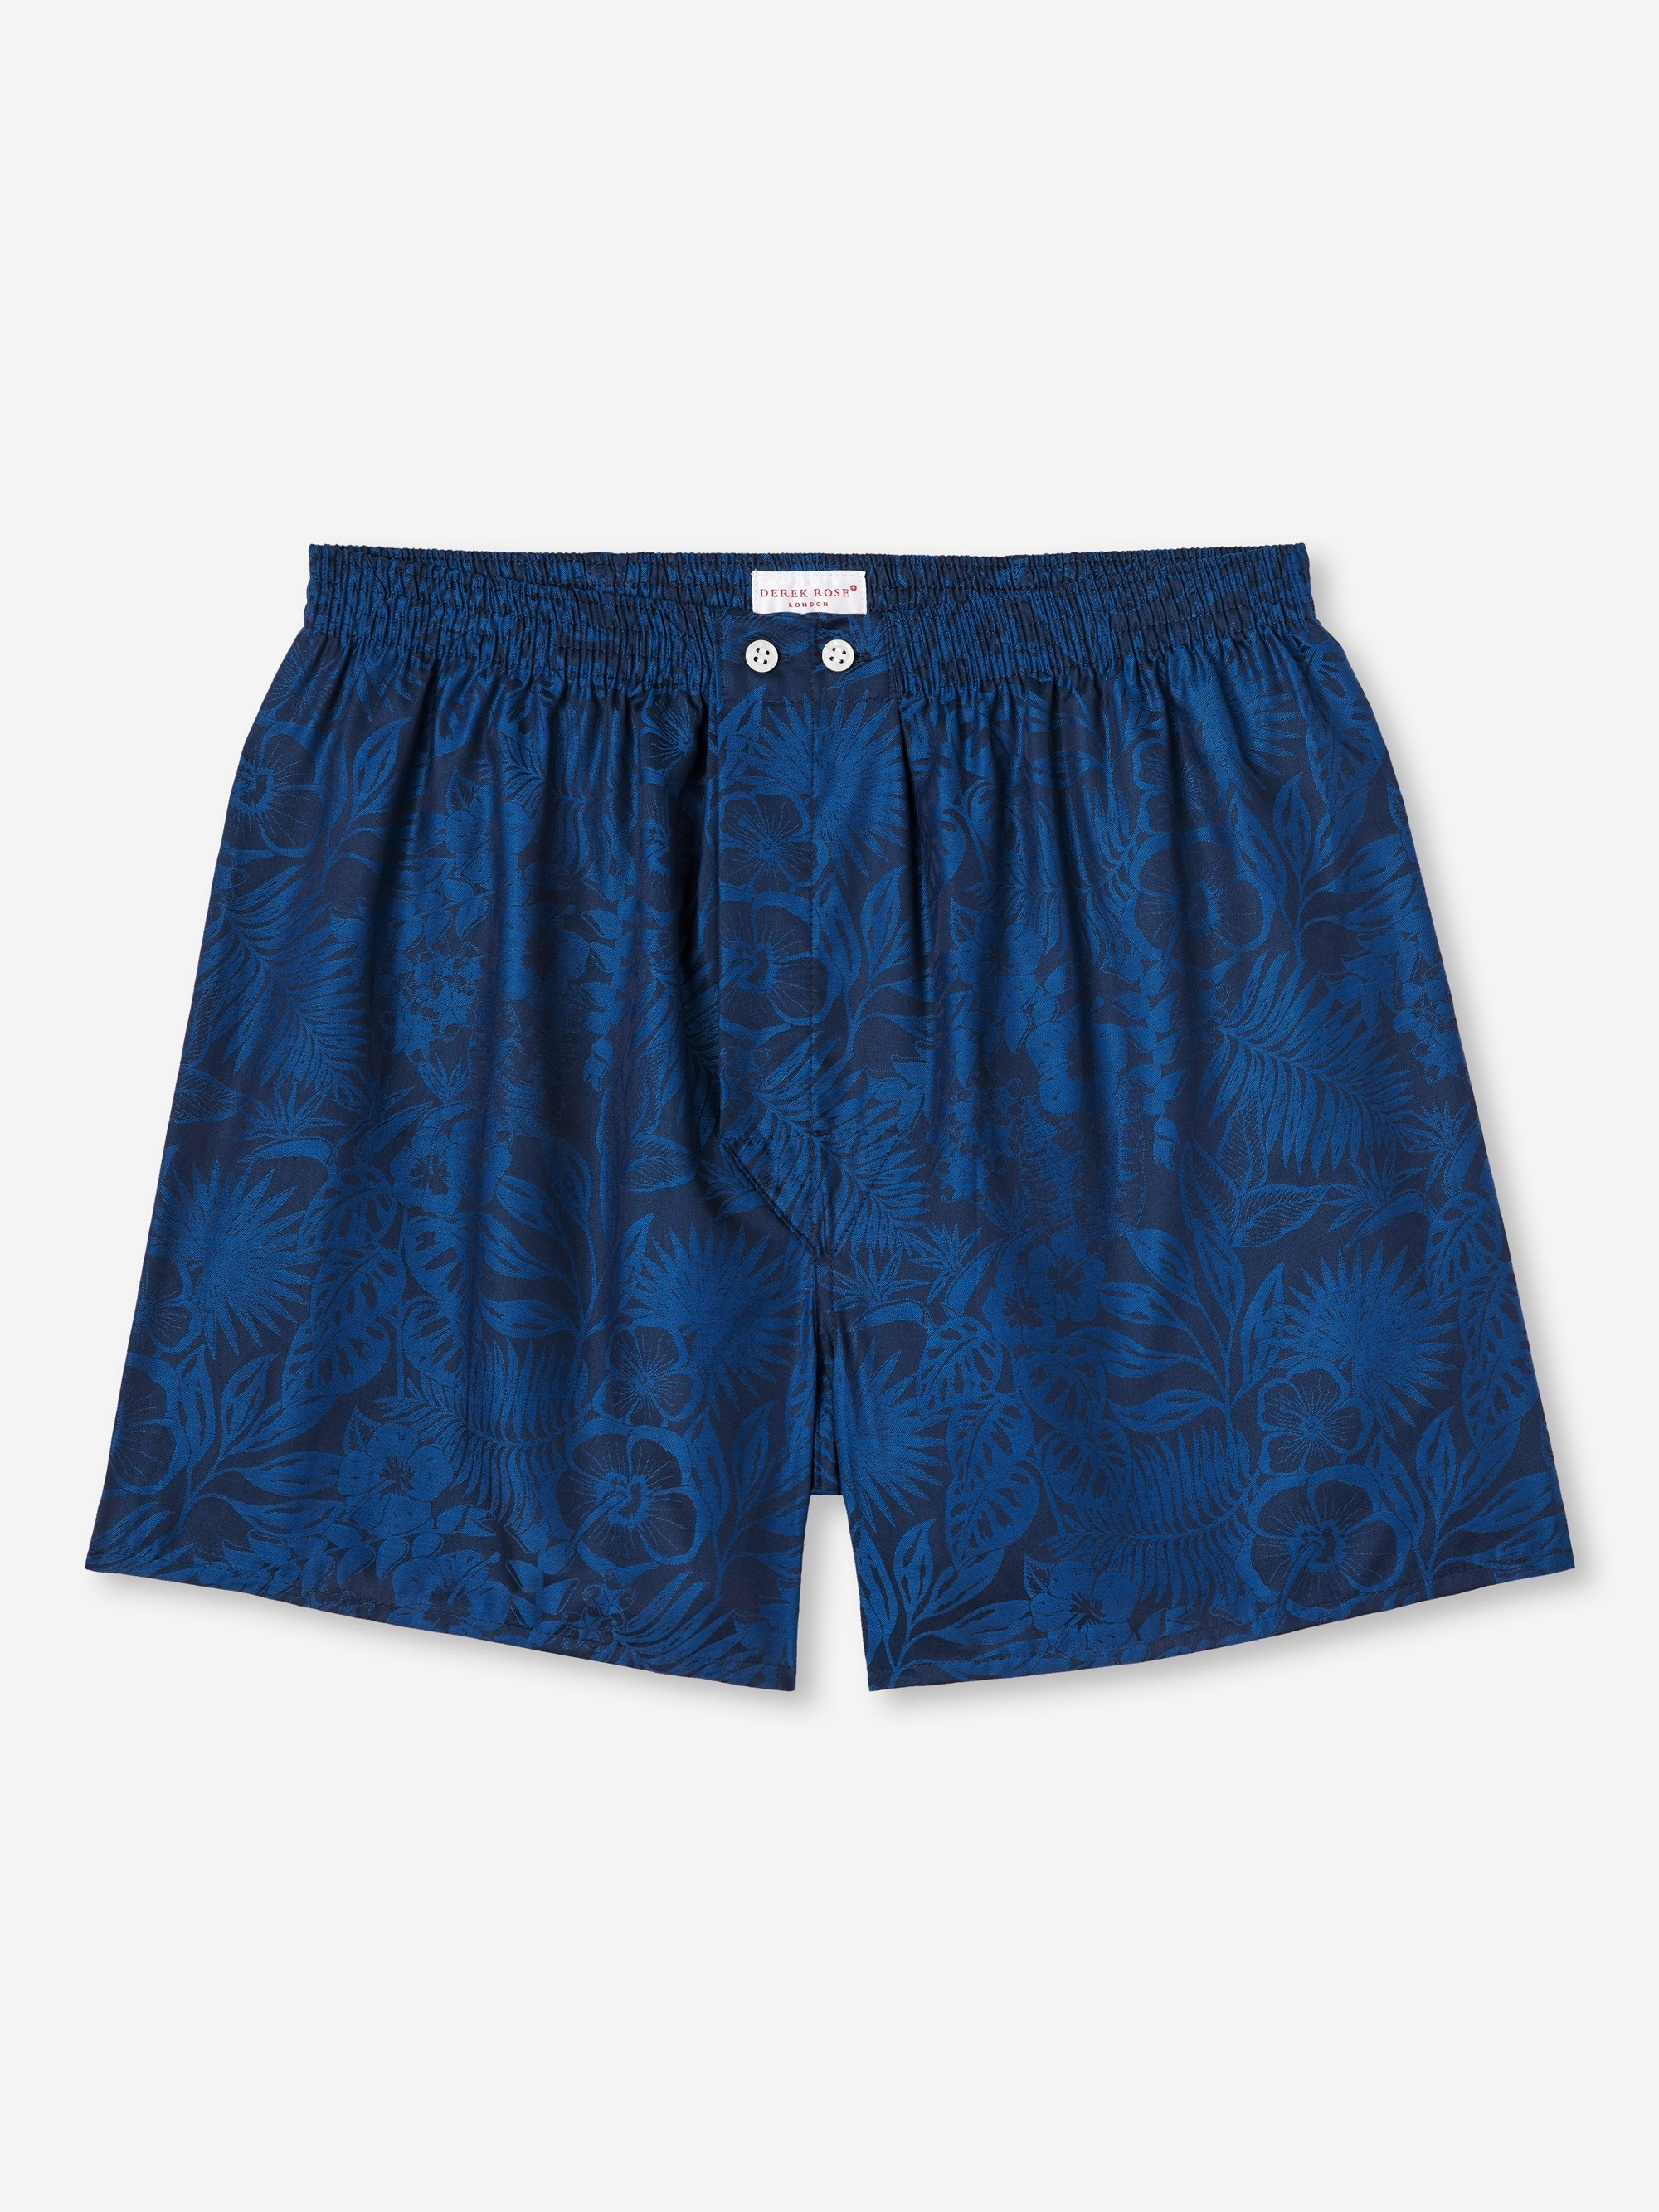 Men's Classic Fit Boxer Shorts Paris 19 Cotton Jacquard Navy